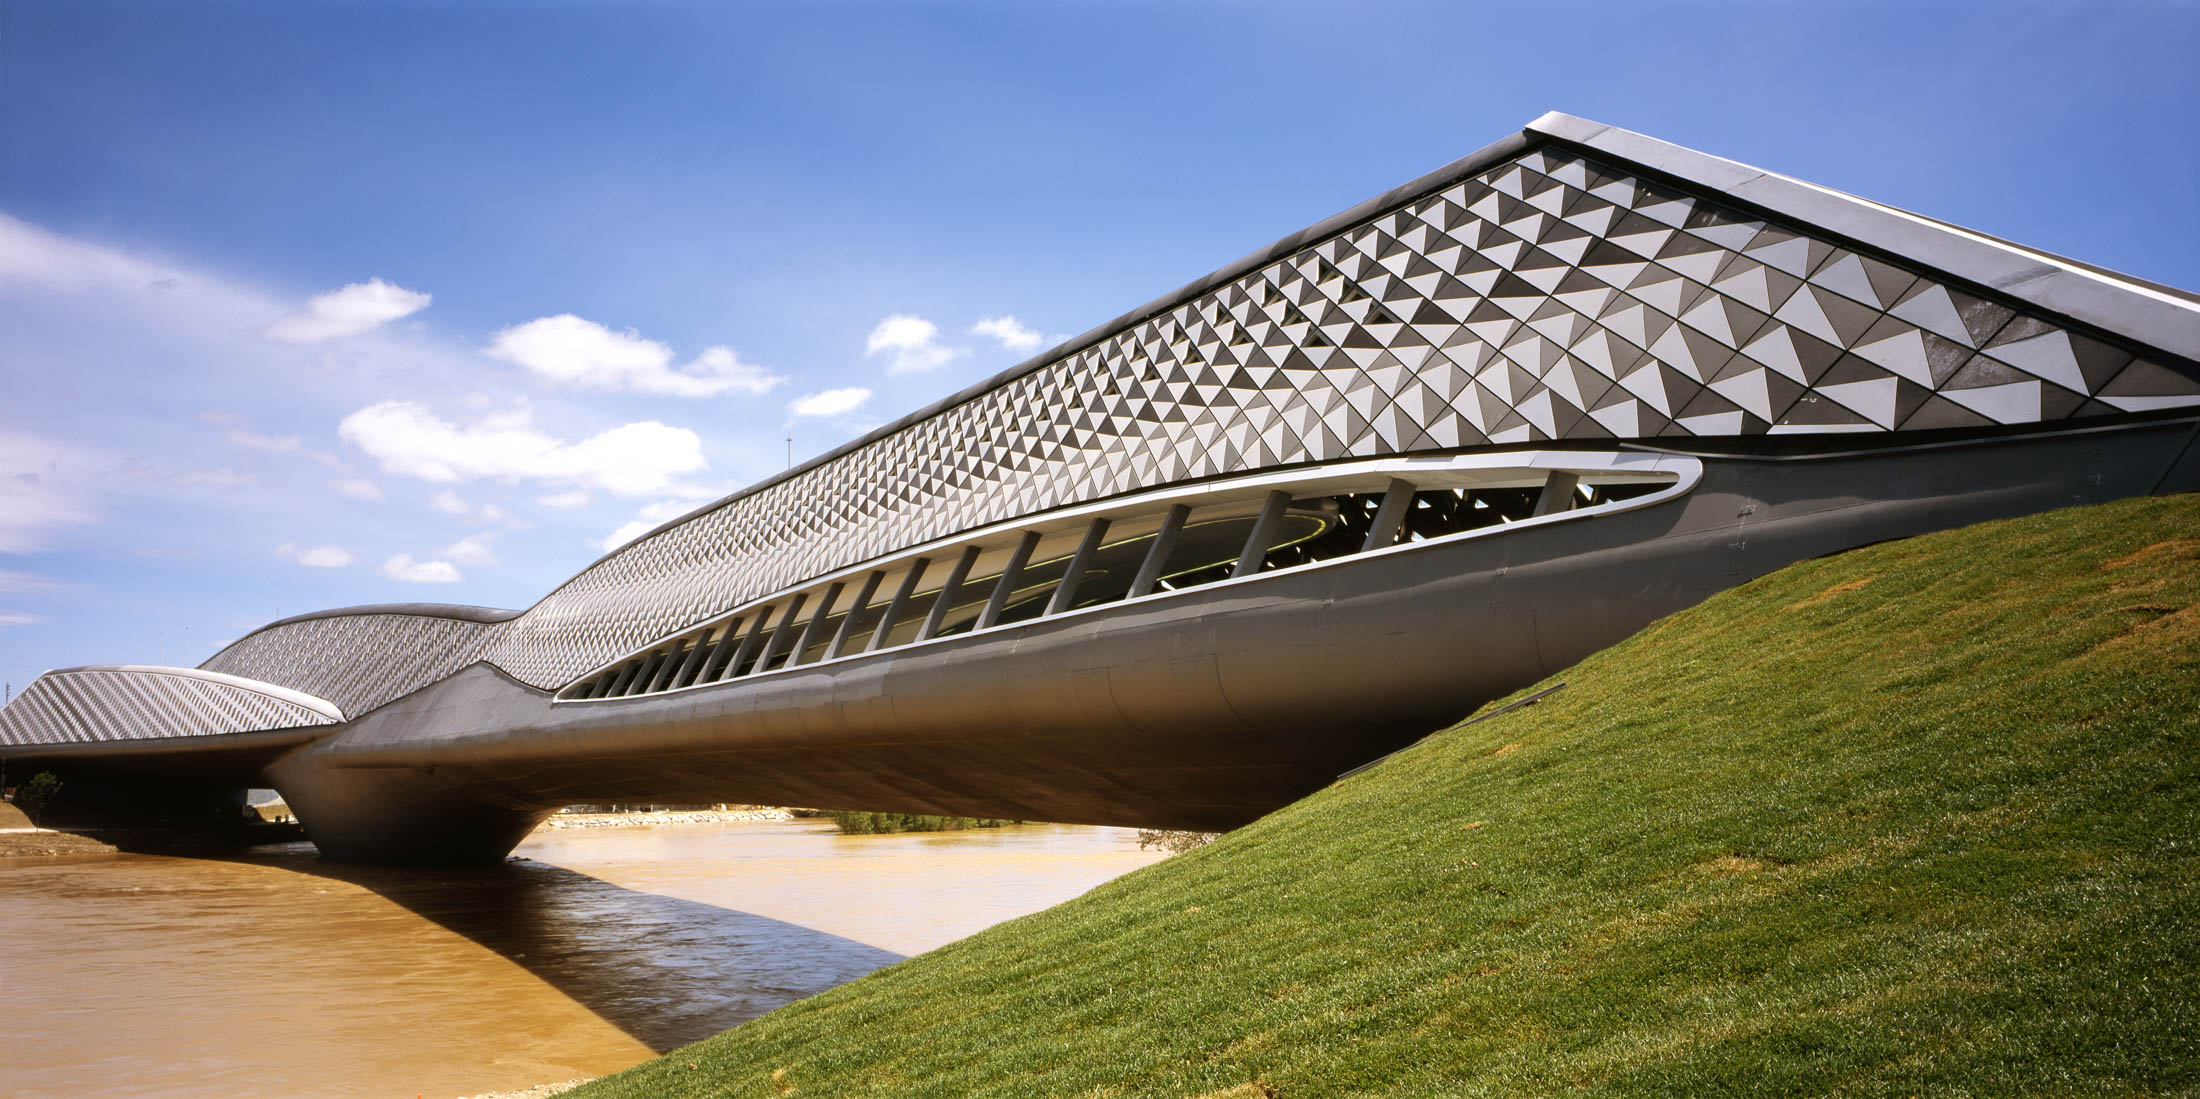 Zaha Hadid's Best Buildings; Architect Dead at 65 - Bloomberg